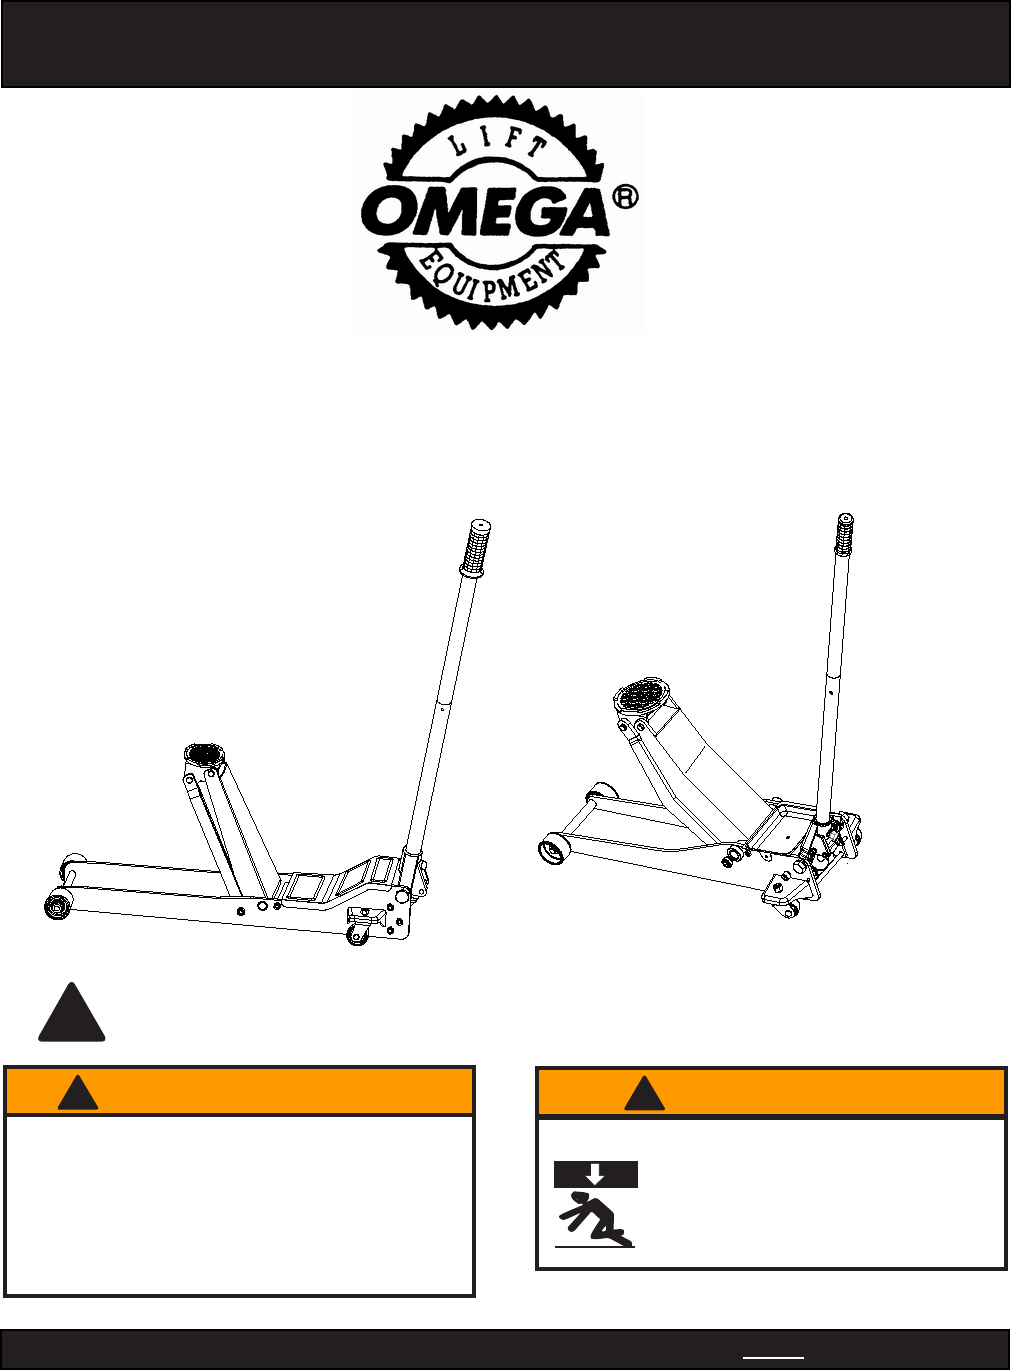 omega lift automobile parts 29023 user guide manualsonline com rh auto manualsonline com Omega Lift Lawsuit Car Lift Scisdors at Walmart